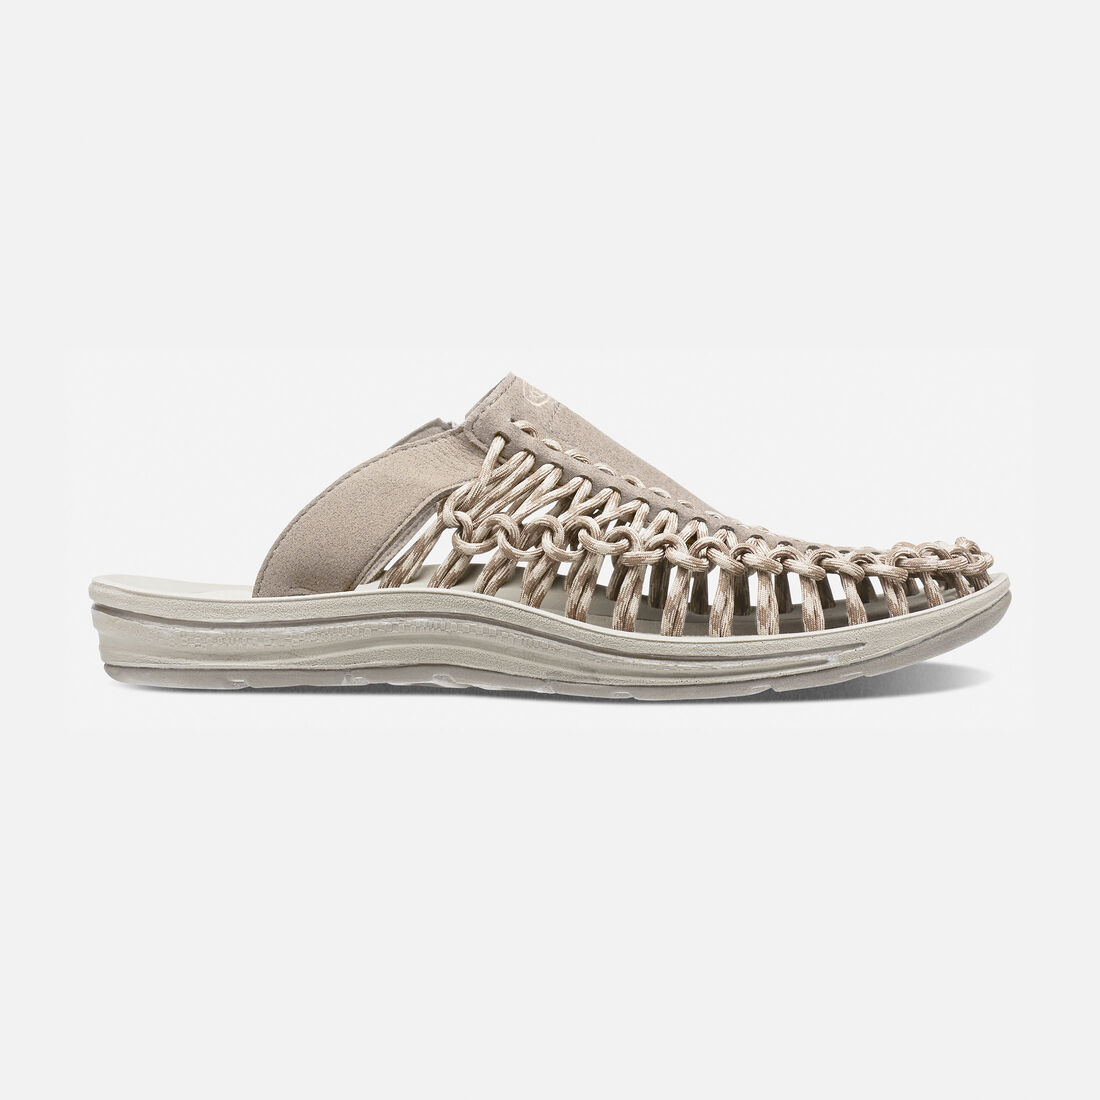 Women's UNEEK SLIDE in Brindle/Feather Gray - large view.